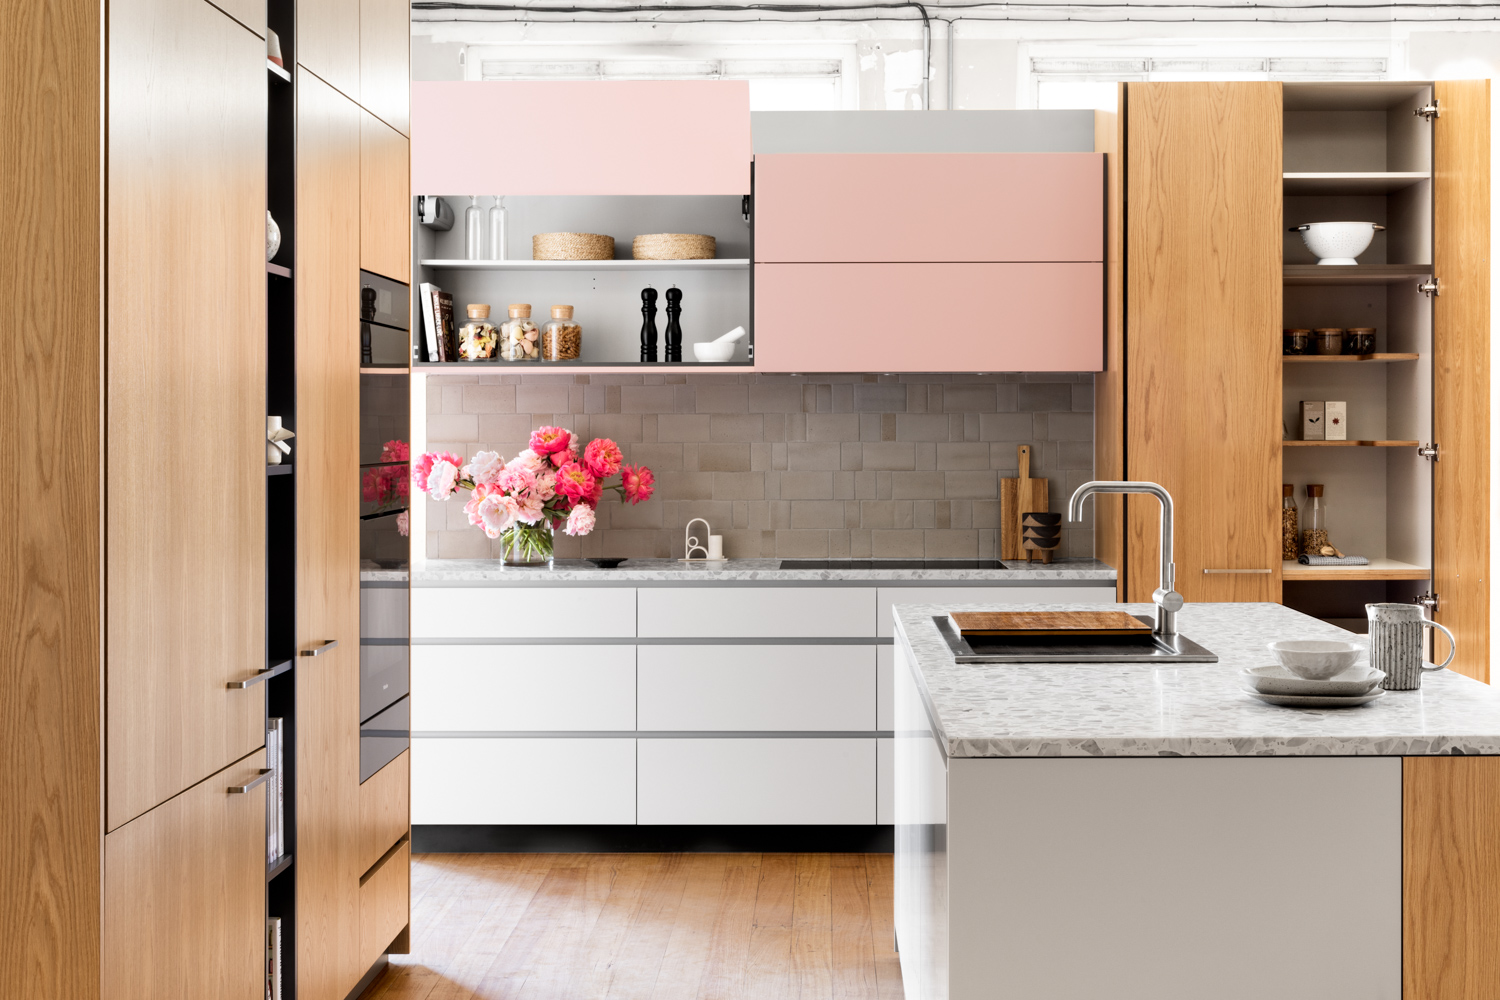 Kitchen & Sink by Cantilever, Tiles by Anchor Ceramics, Tap by Sussex Taps, Terrazzo benchtop from Signorino   Photo: Martina Gemmola